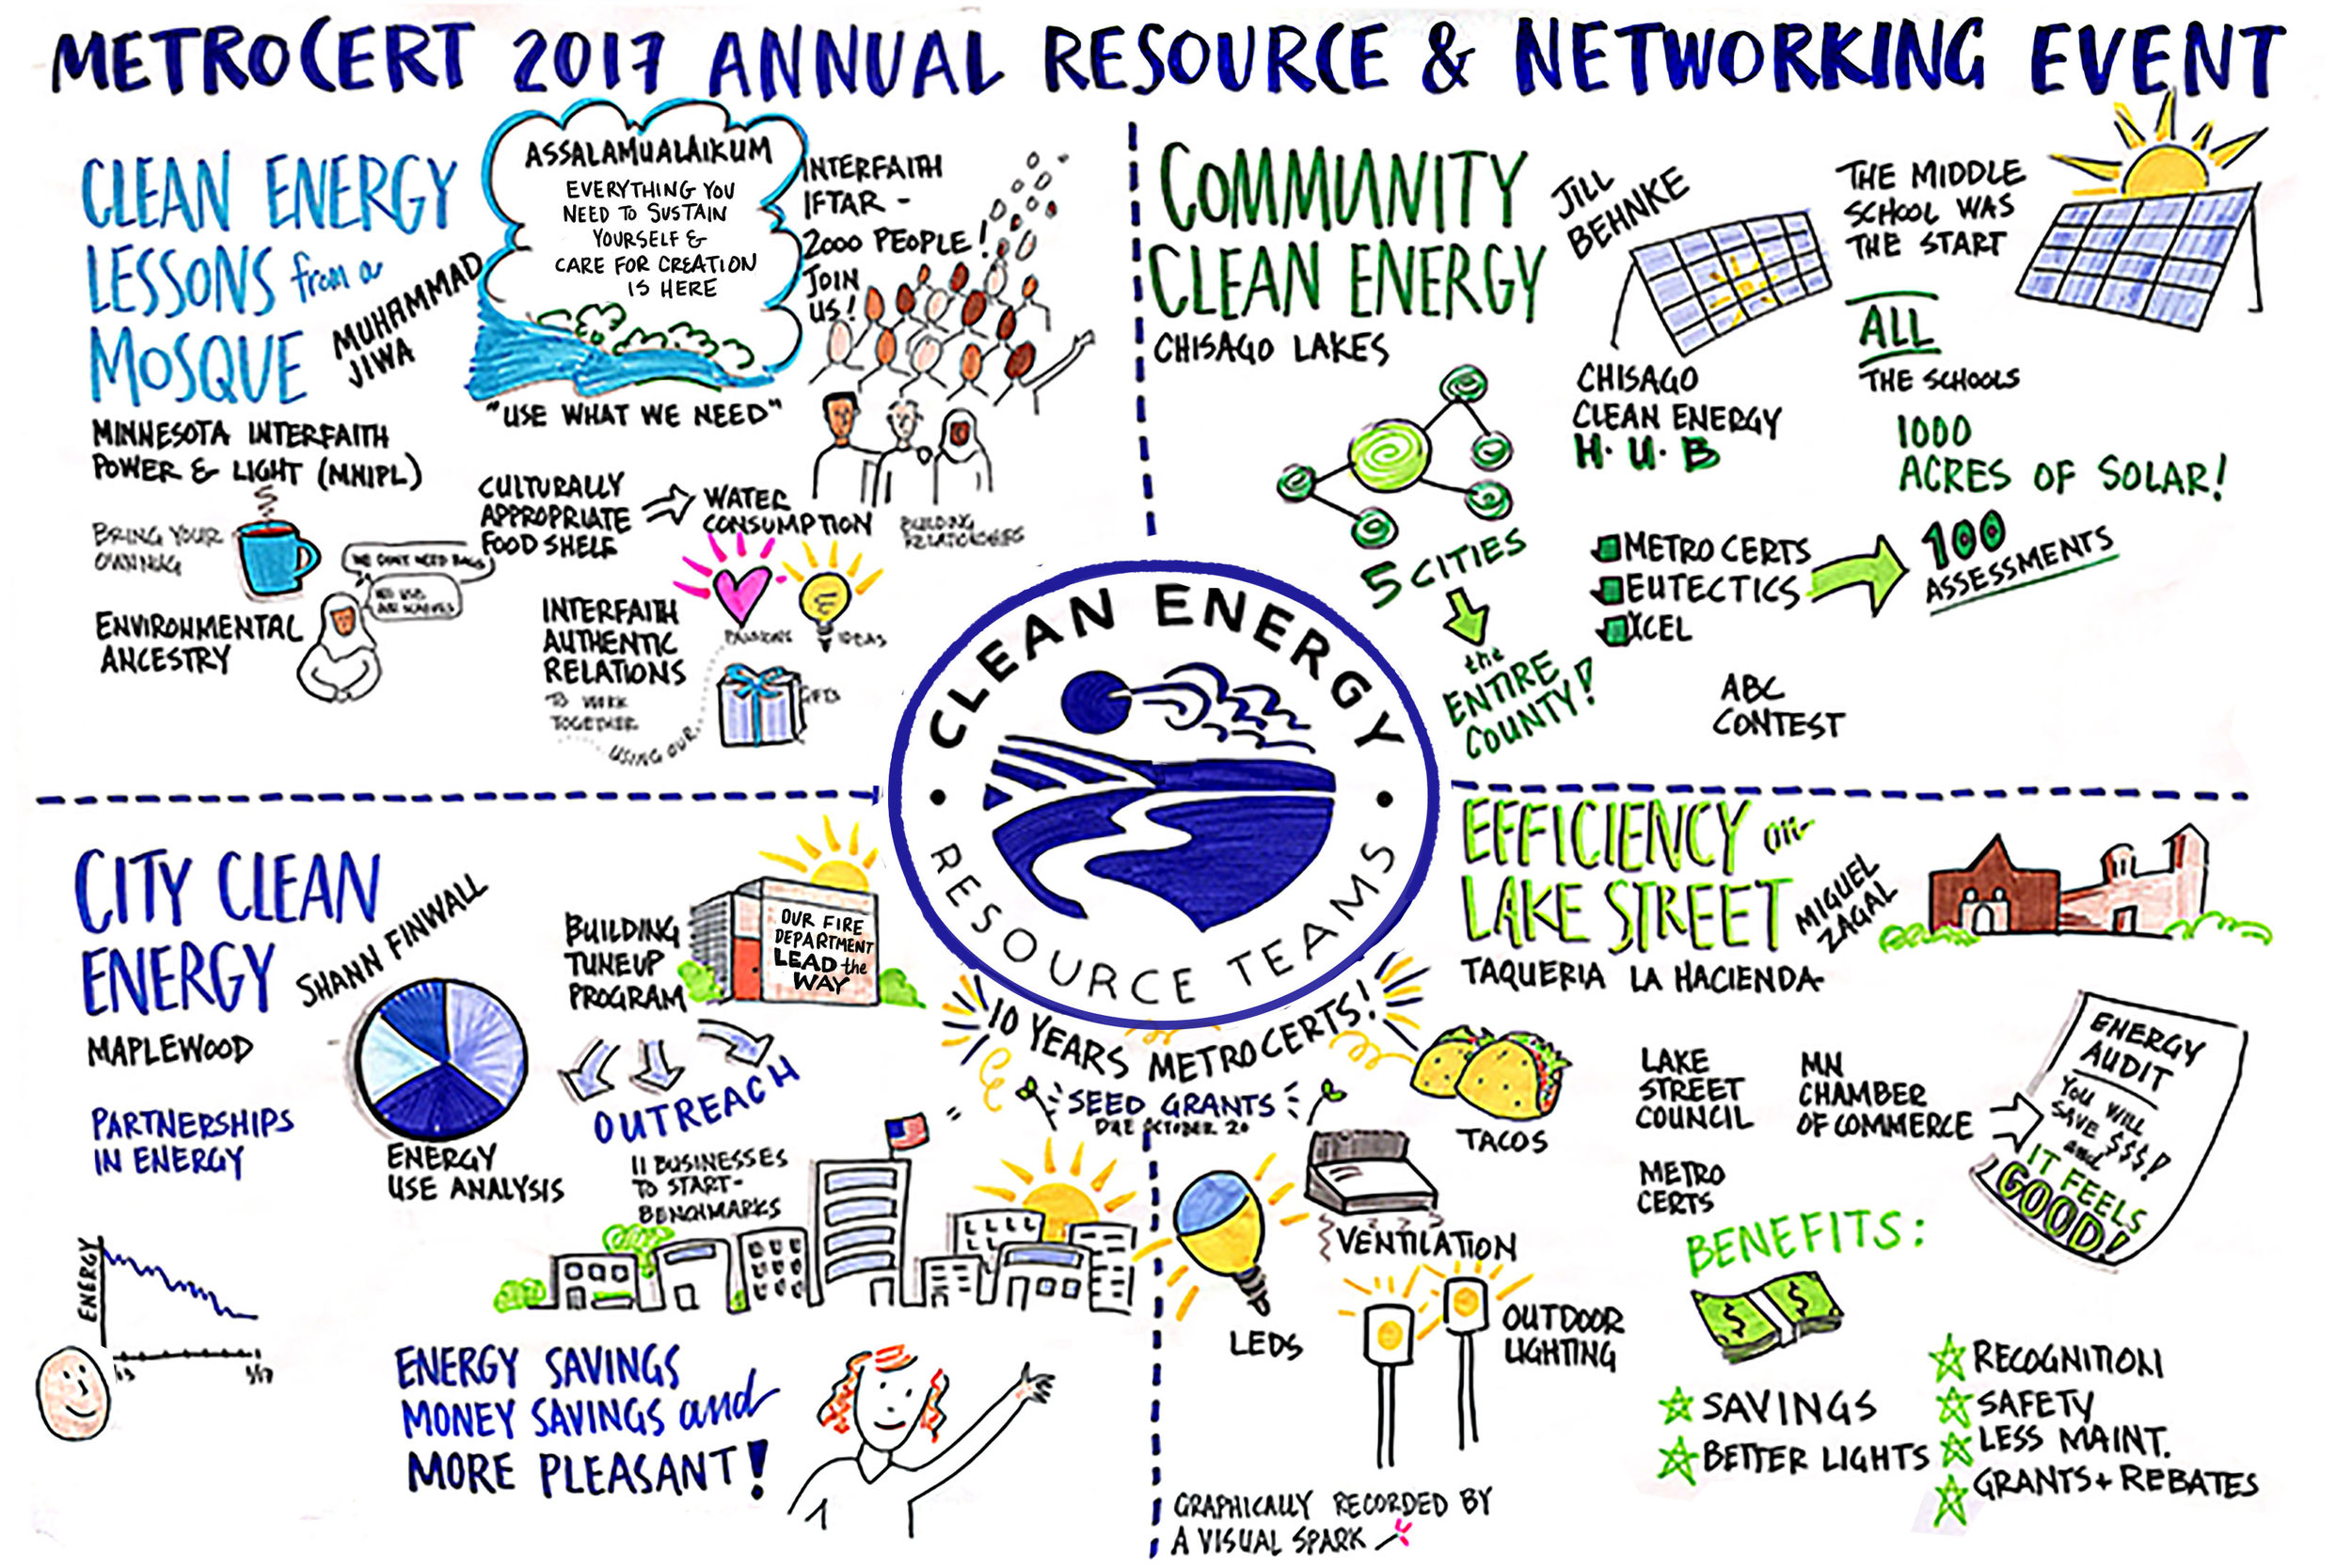 MetroCert Annual Resource and Networking Event